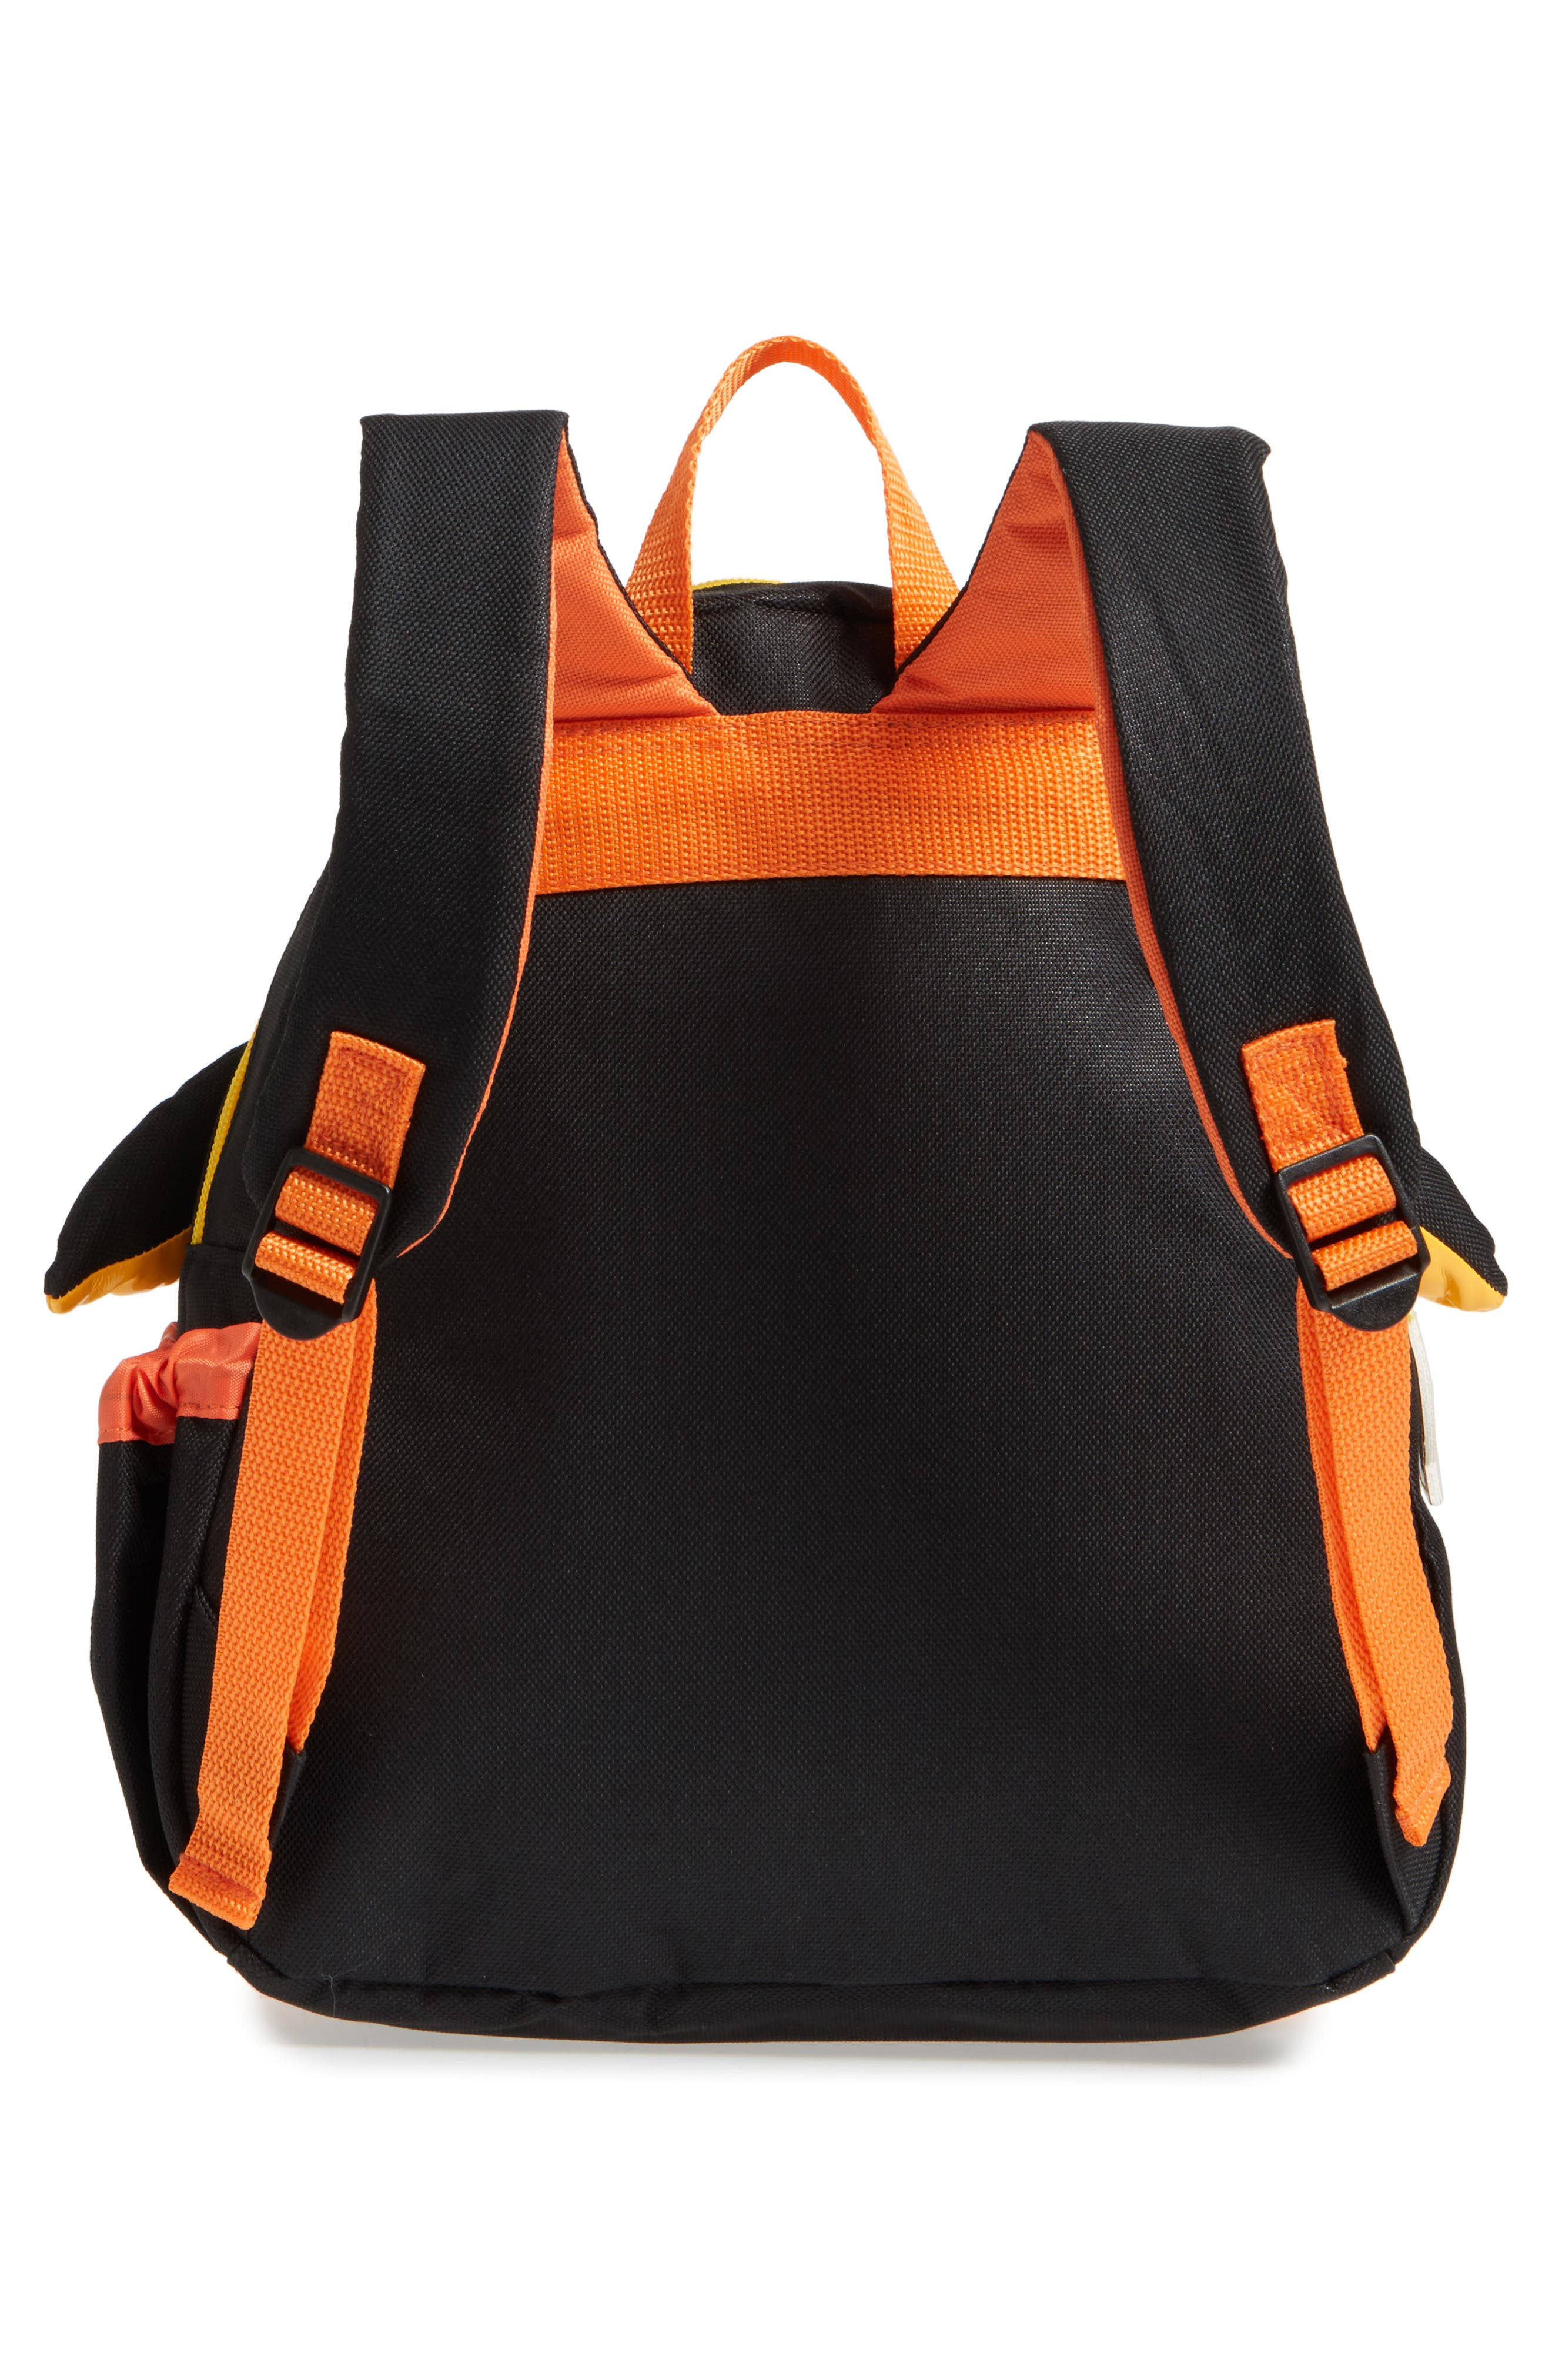 Zoo Pack Backpack,                             Alternate thumbnail 50, color,